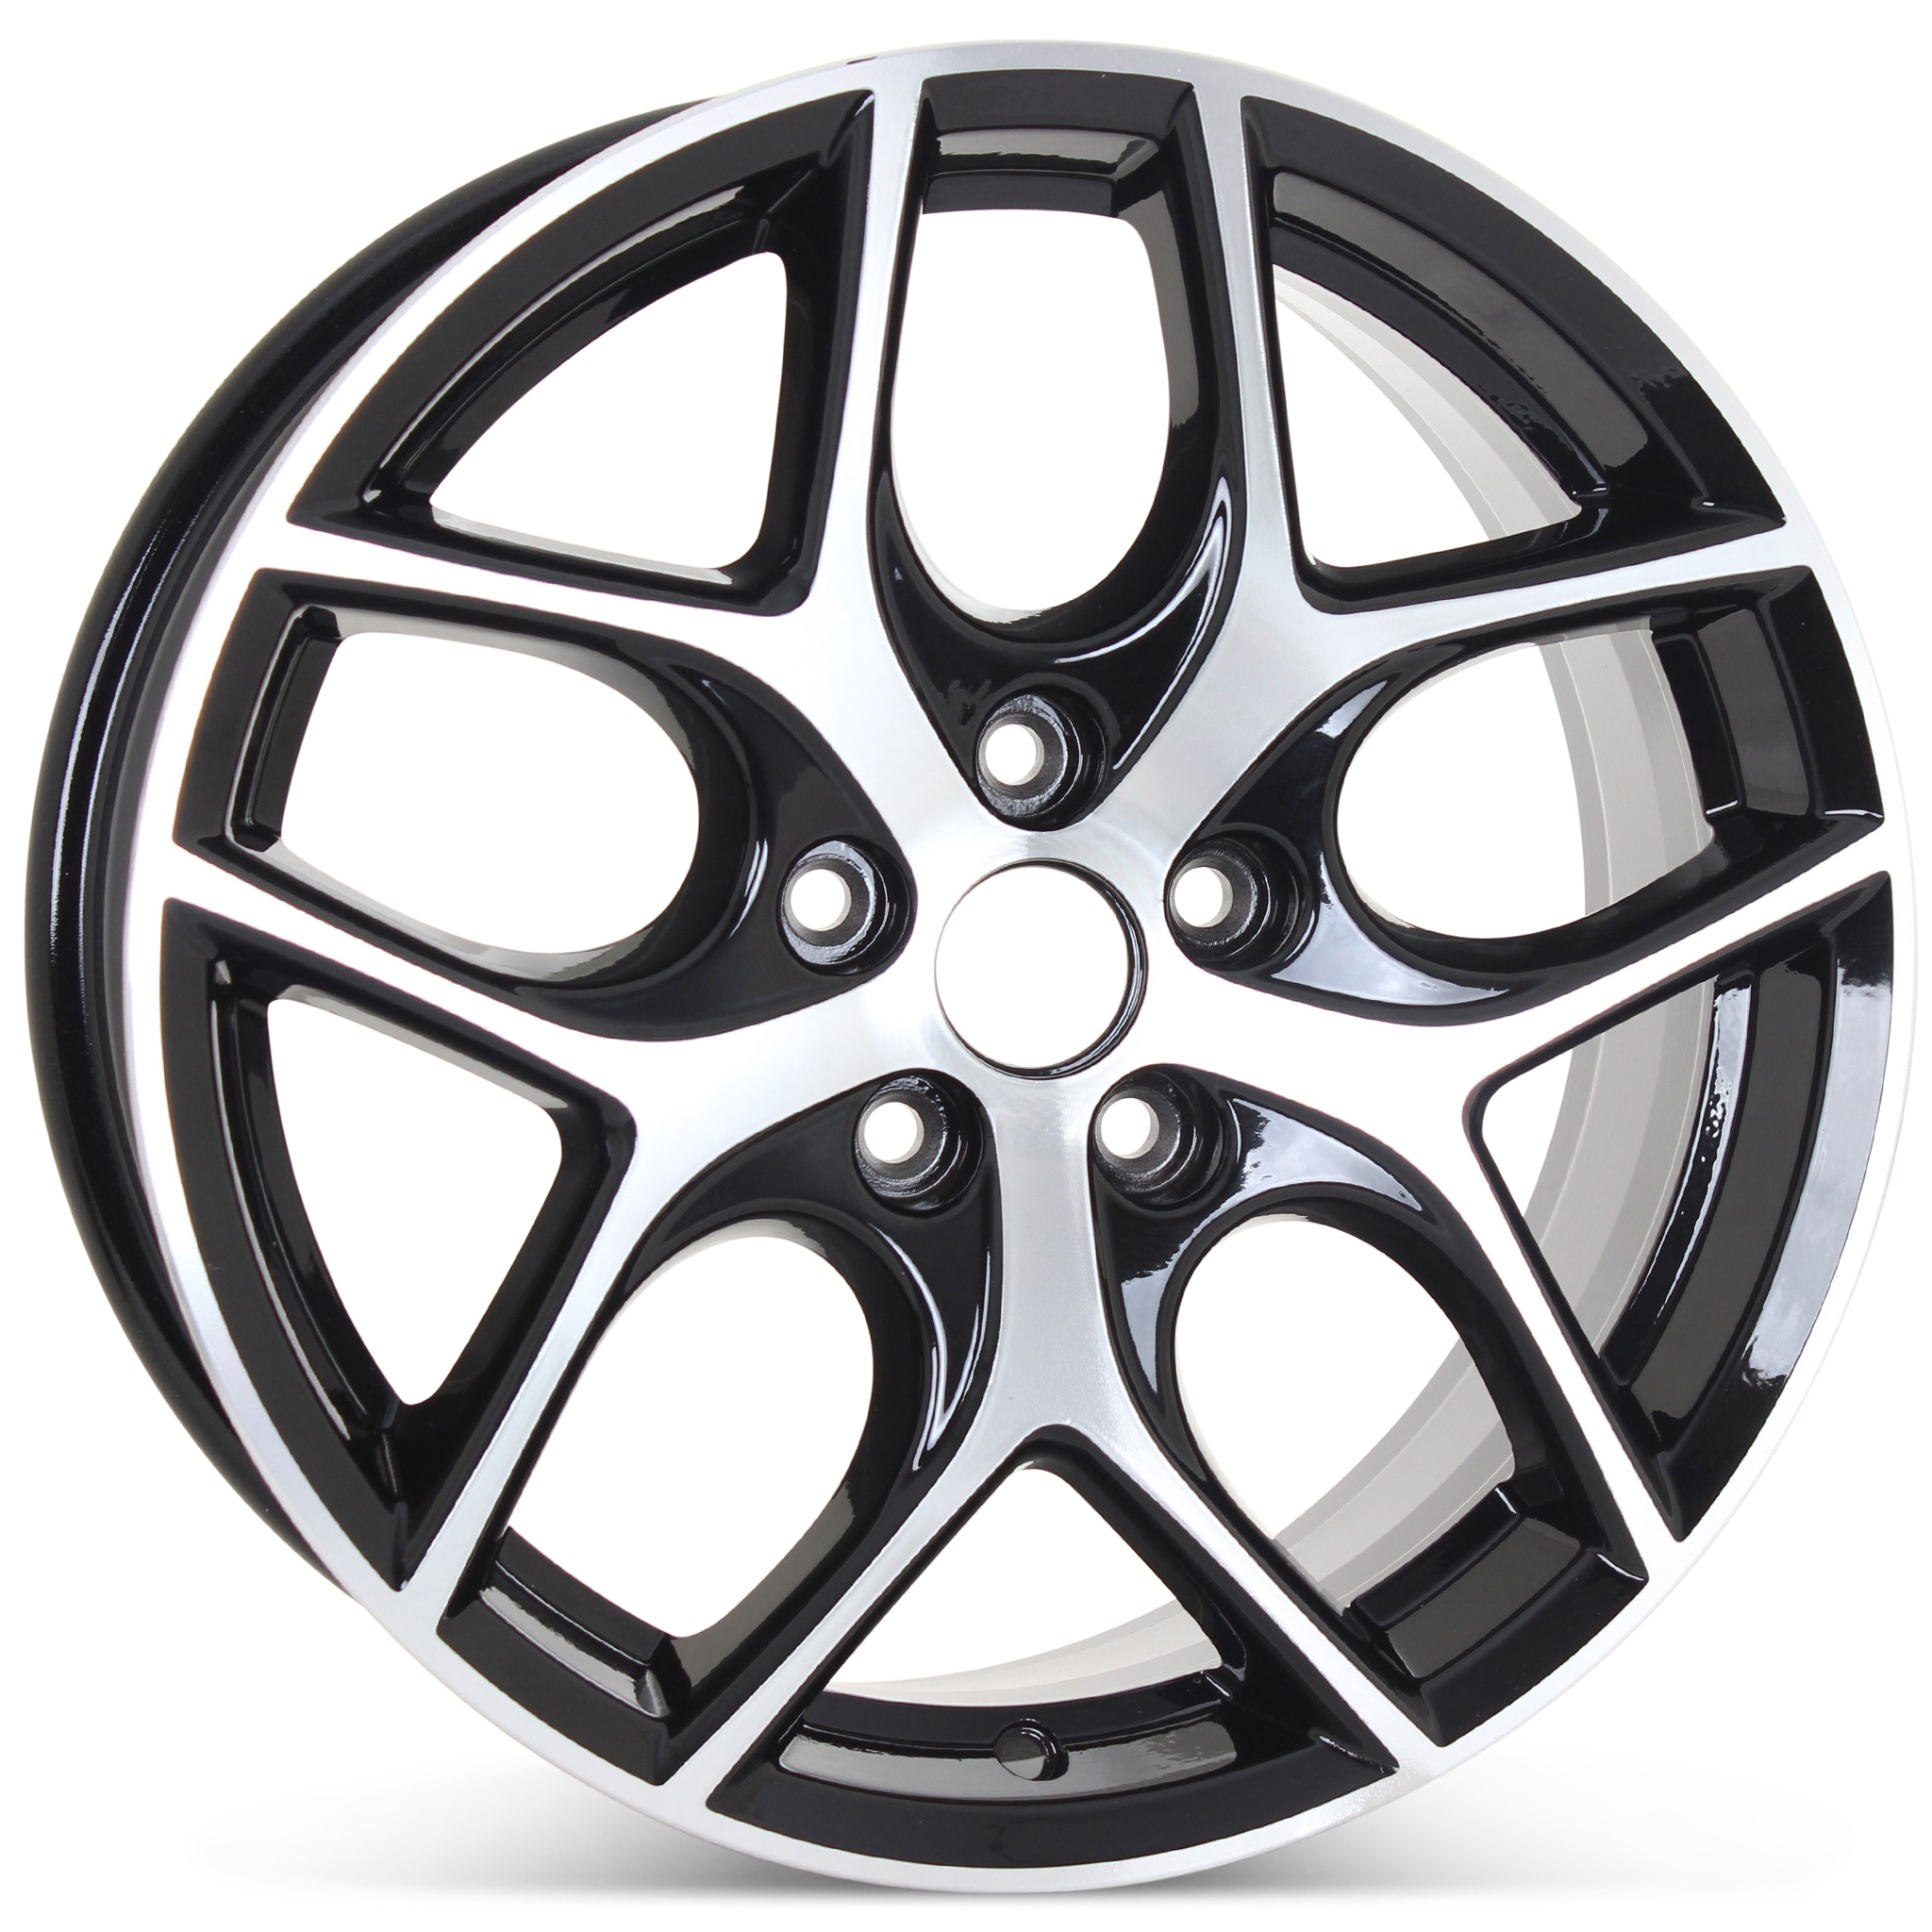 "New 17"" Alloy Replacement Wheel For Acura TL 2004 2005"